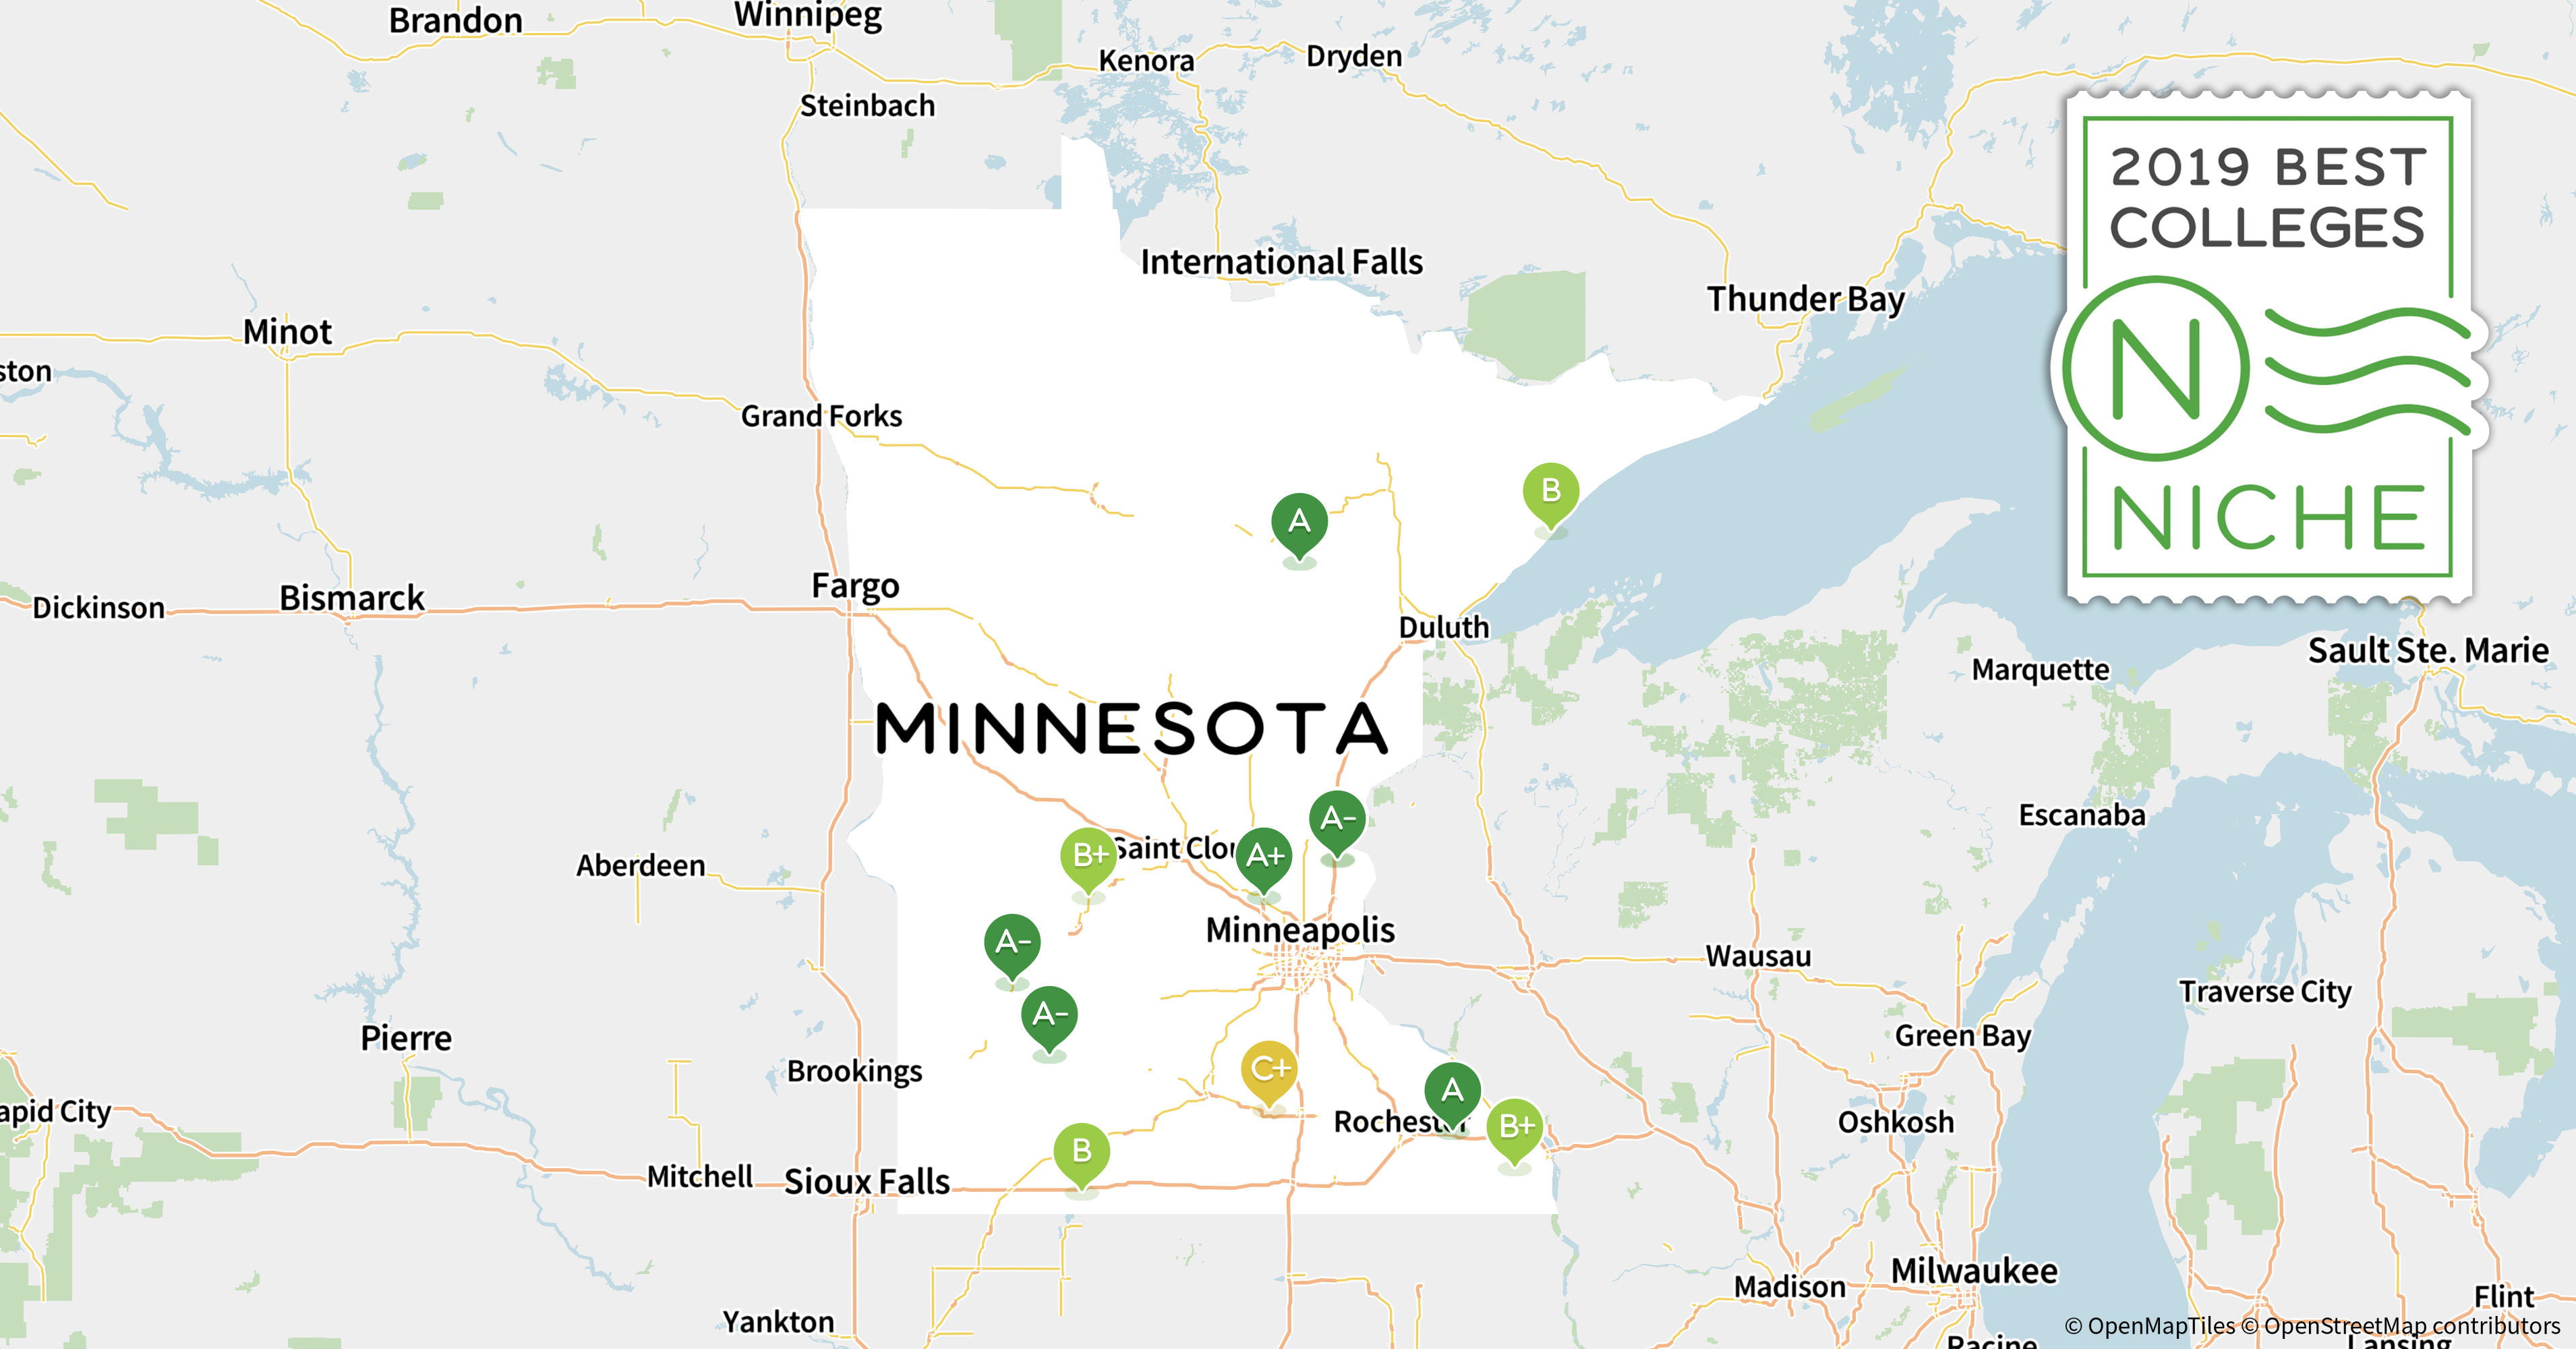 2019 Best Colleges in Minnesota - Niche